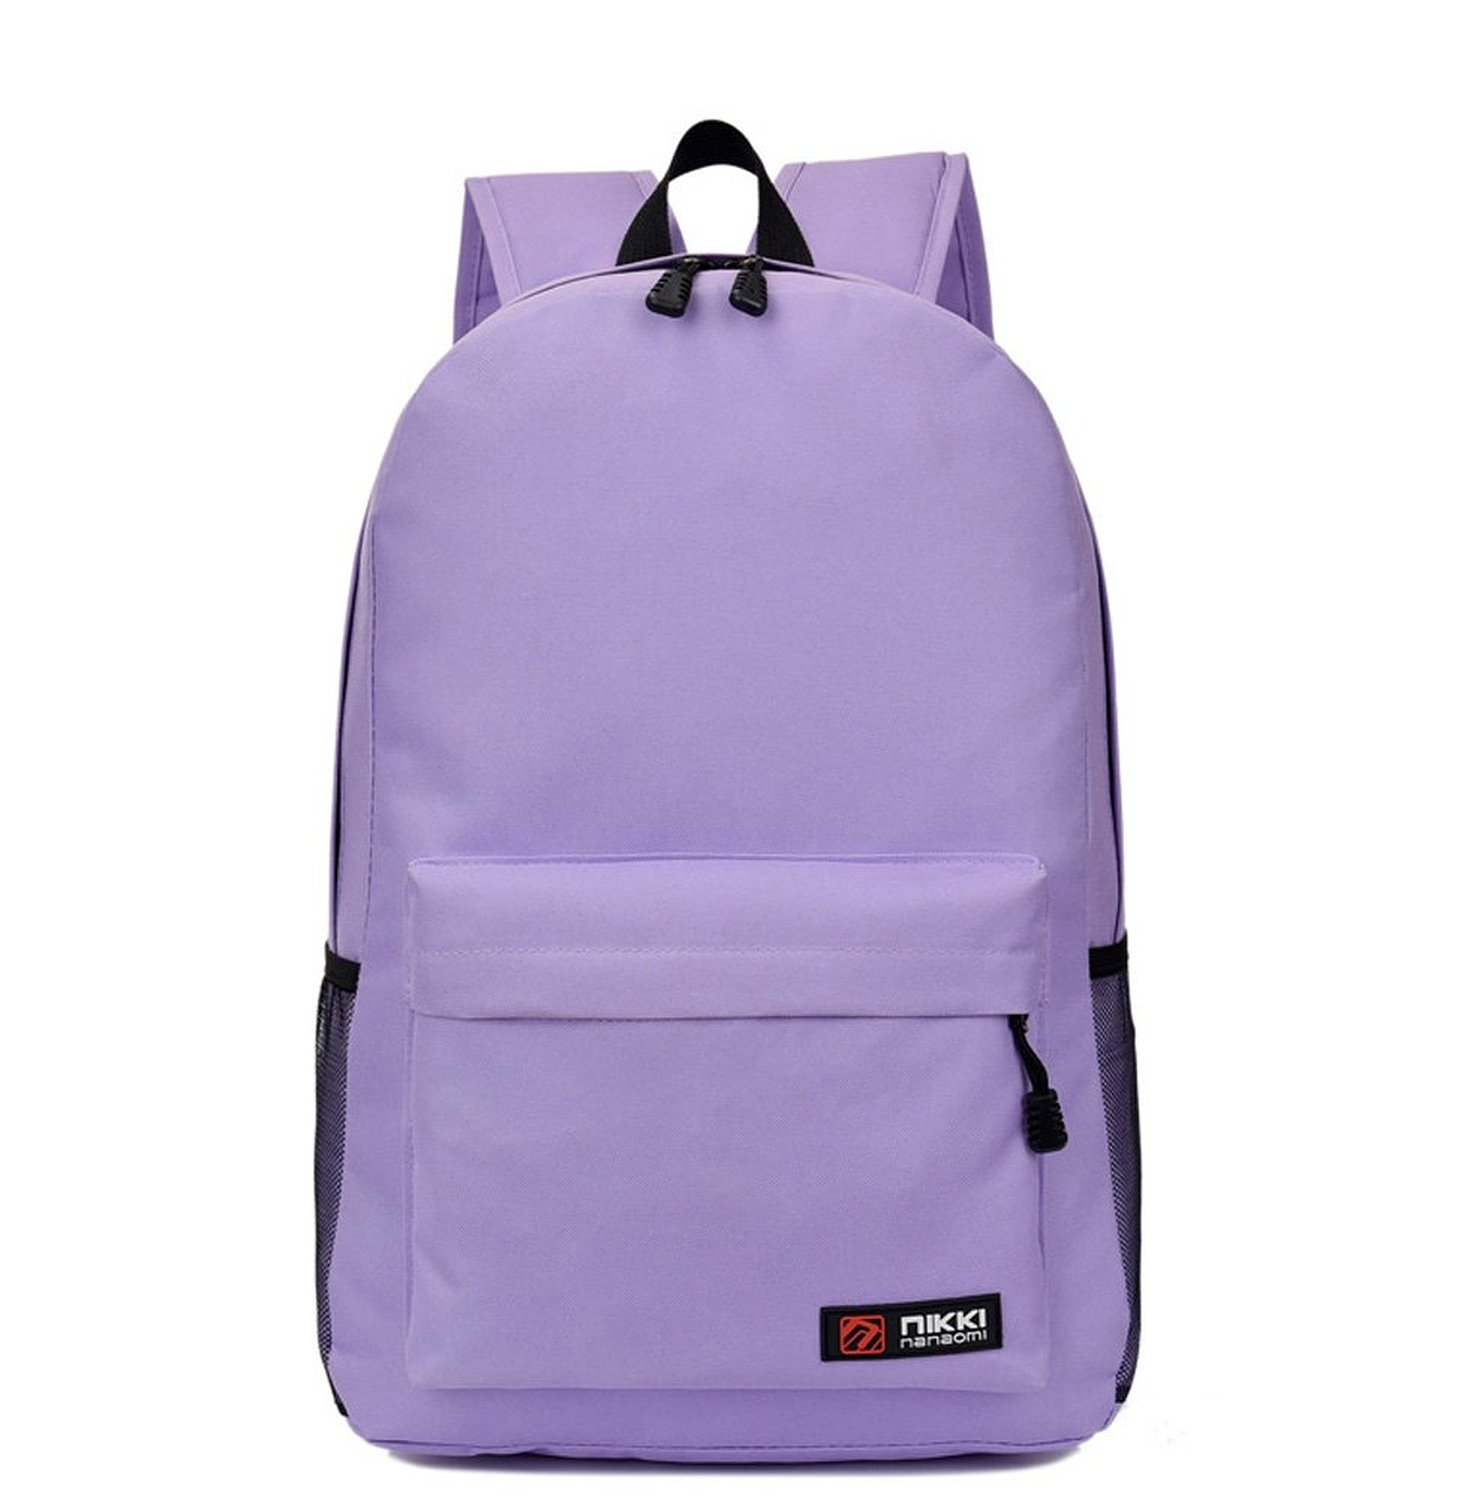 c26a36e9236b Get Quotations · Yatupei Casual Cool Cute College Girls Backpack for School  Book Bags